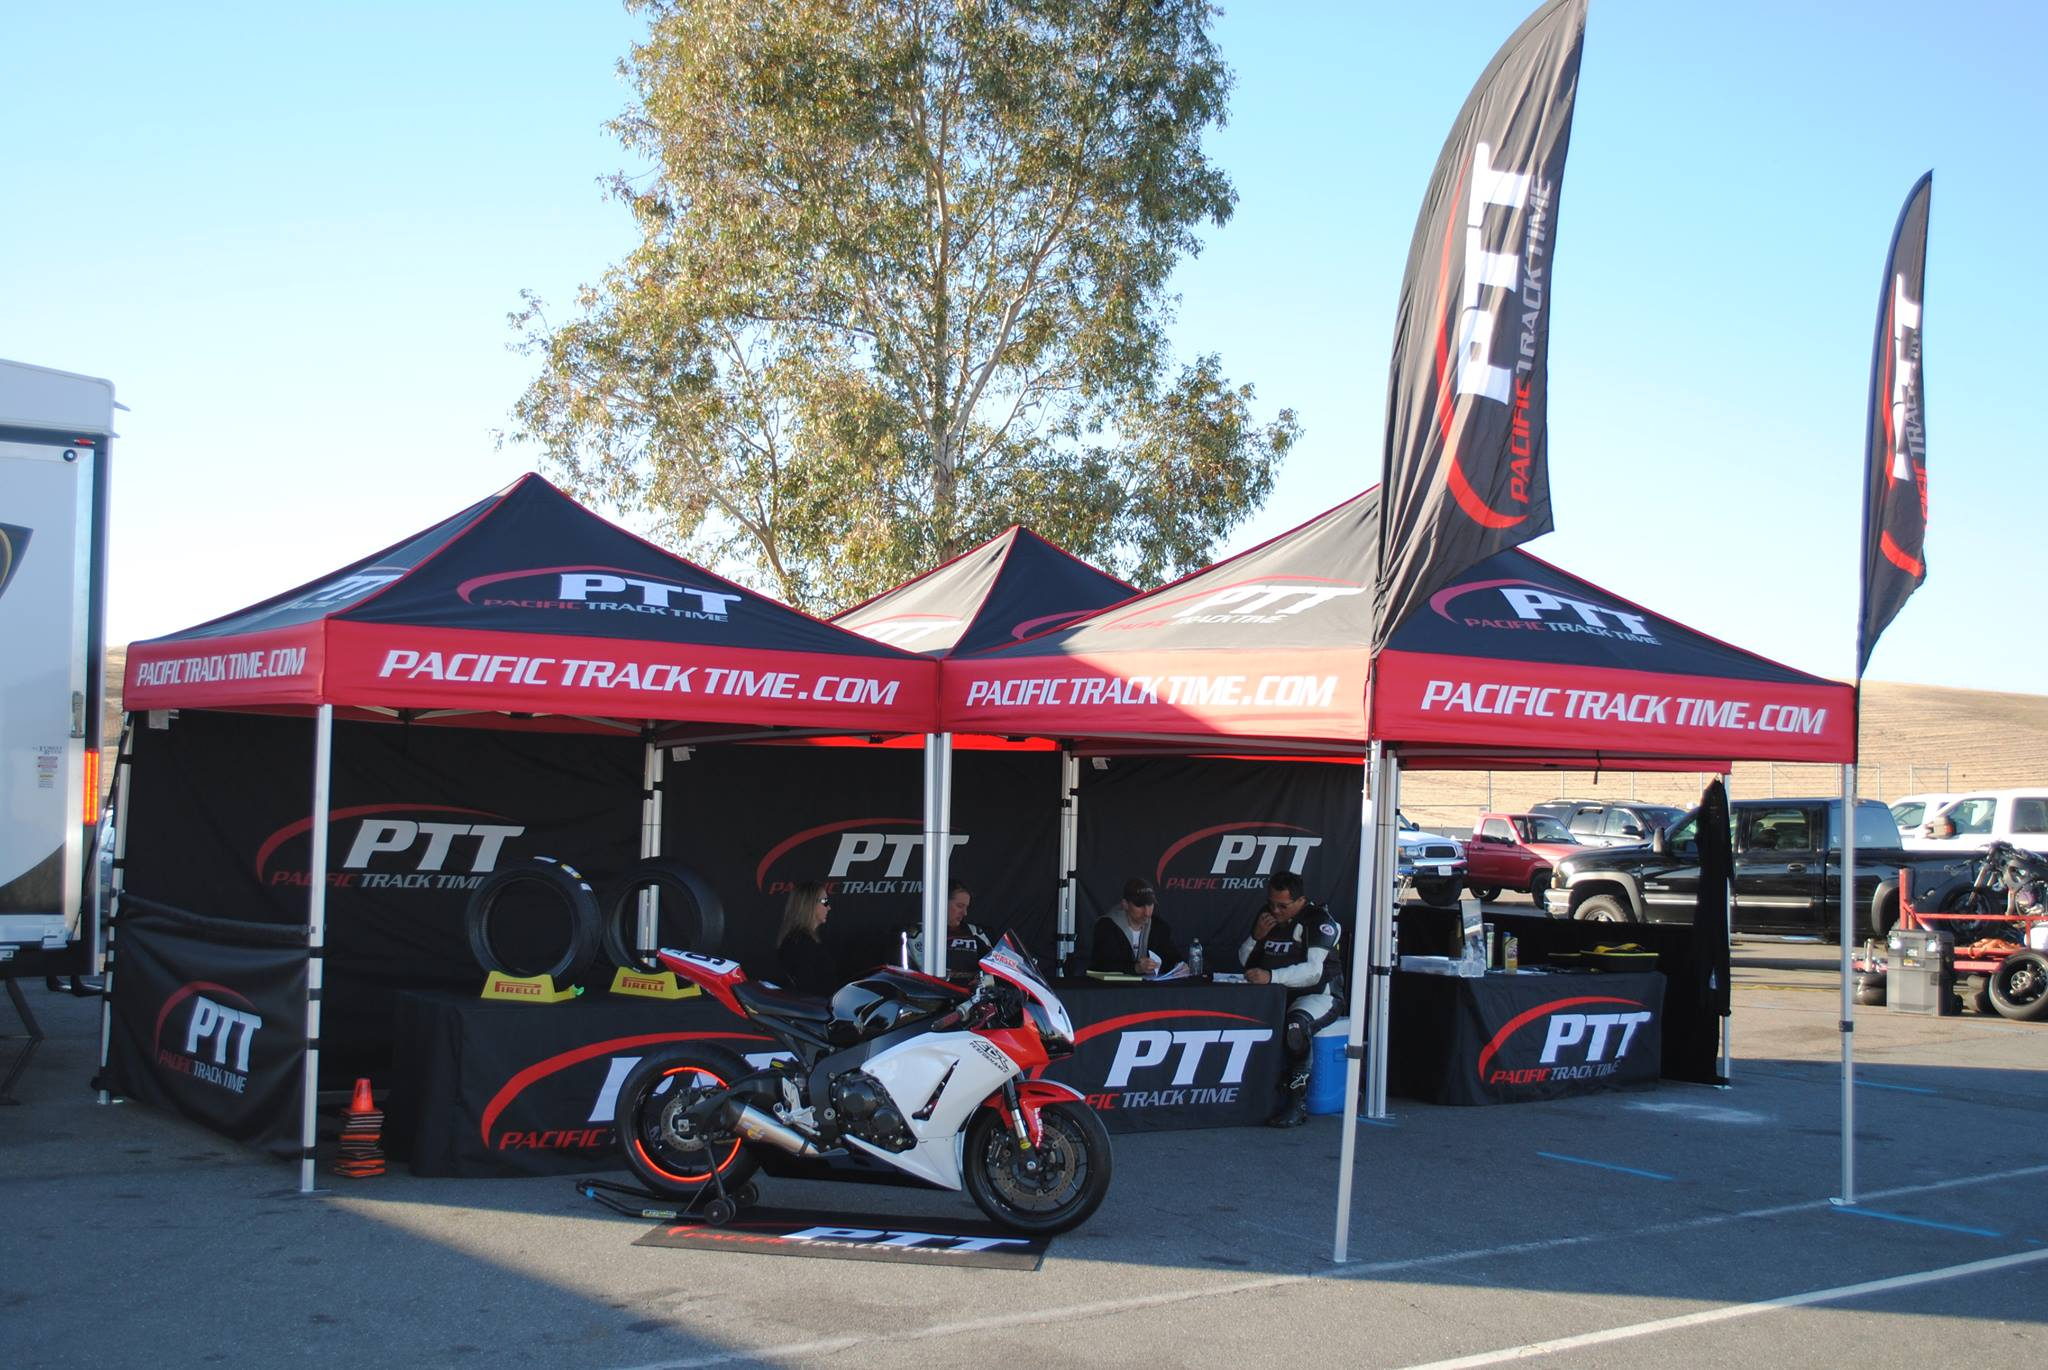 Pacific Track Time - Track Day Registration